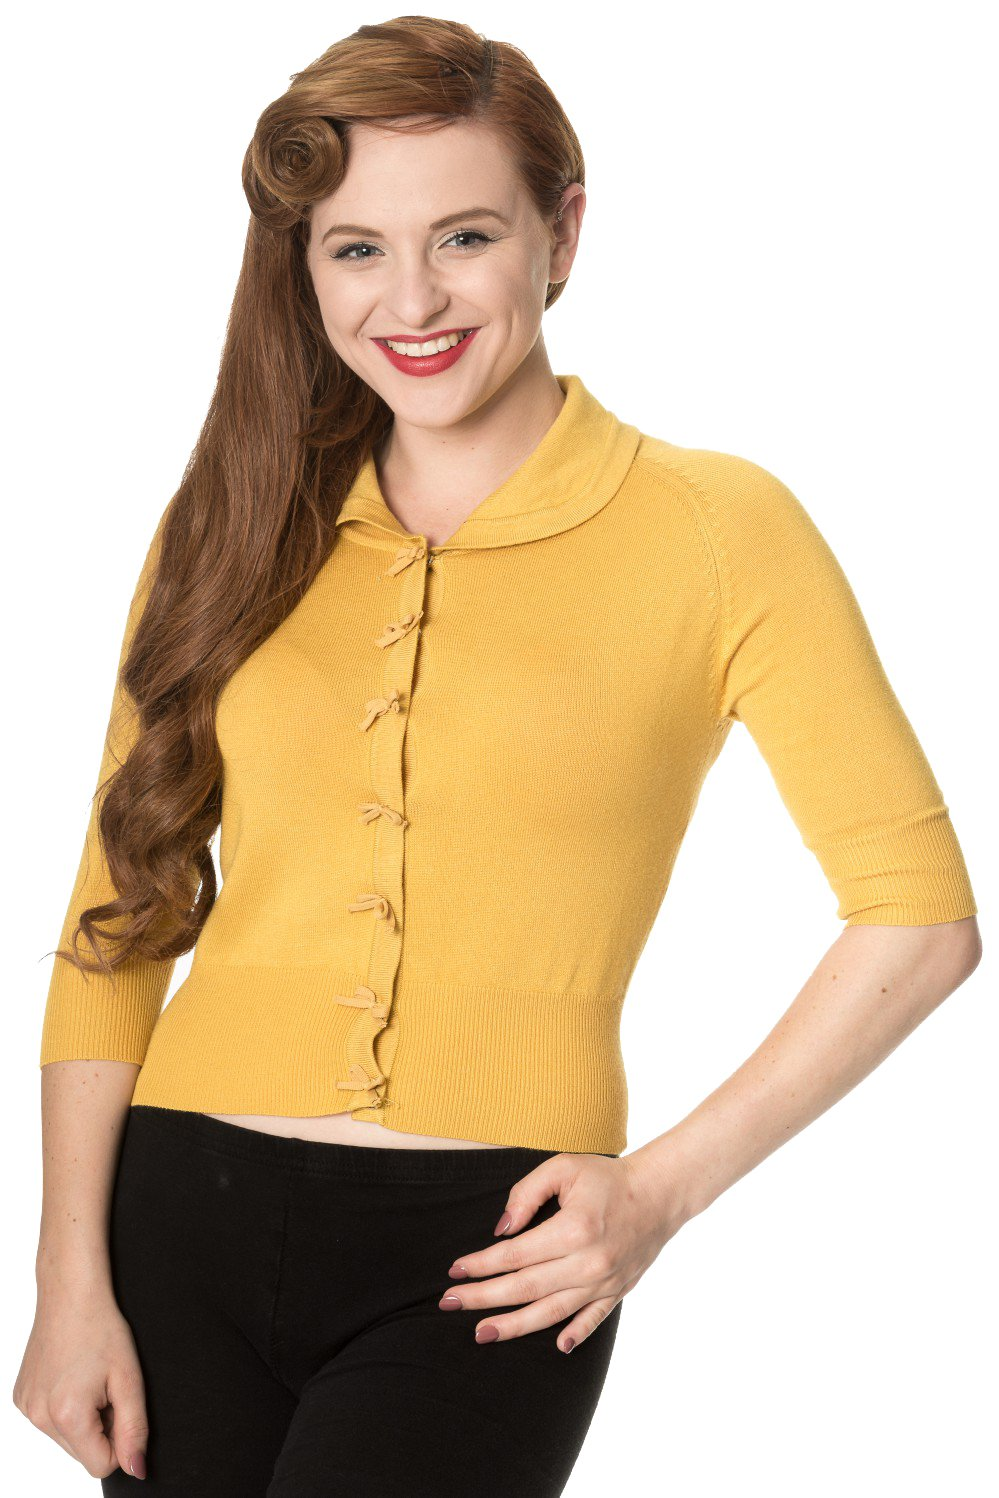 1930s Style Sweaters | Vintage Sweaters Banned Womens April Short Sleeve Cardigan $38.99 AT vintagedancer.com